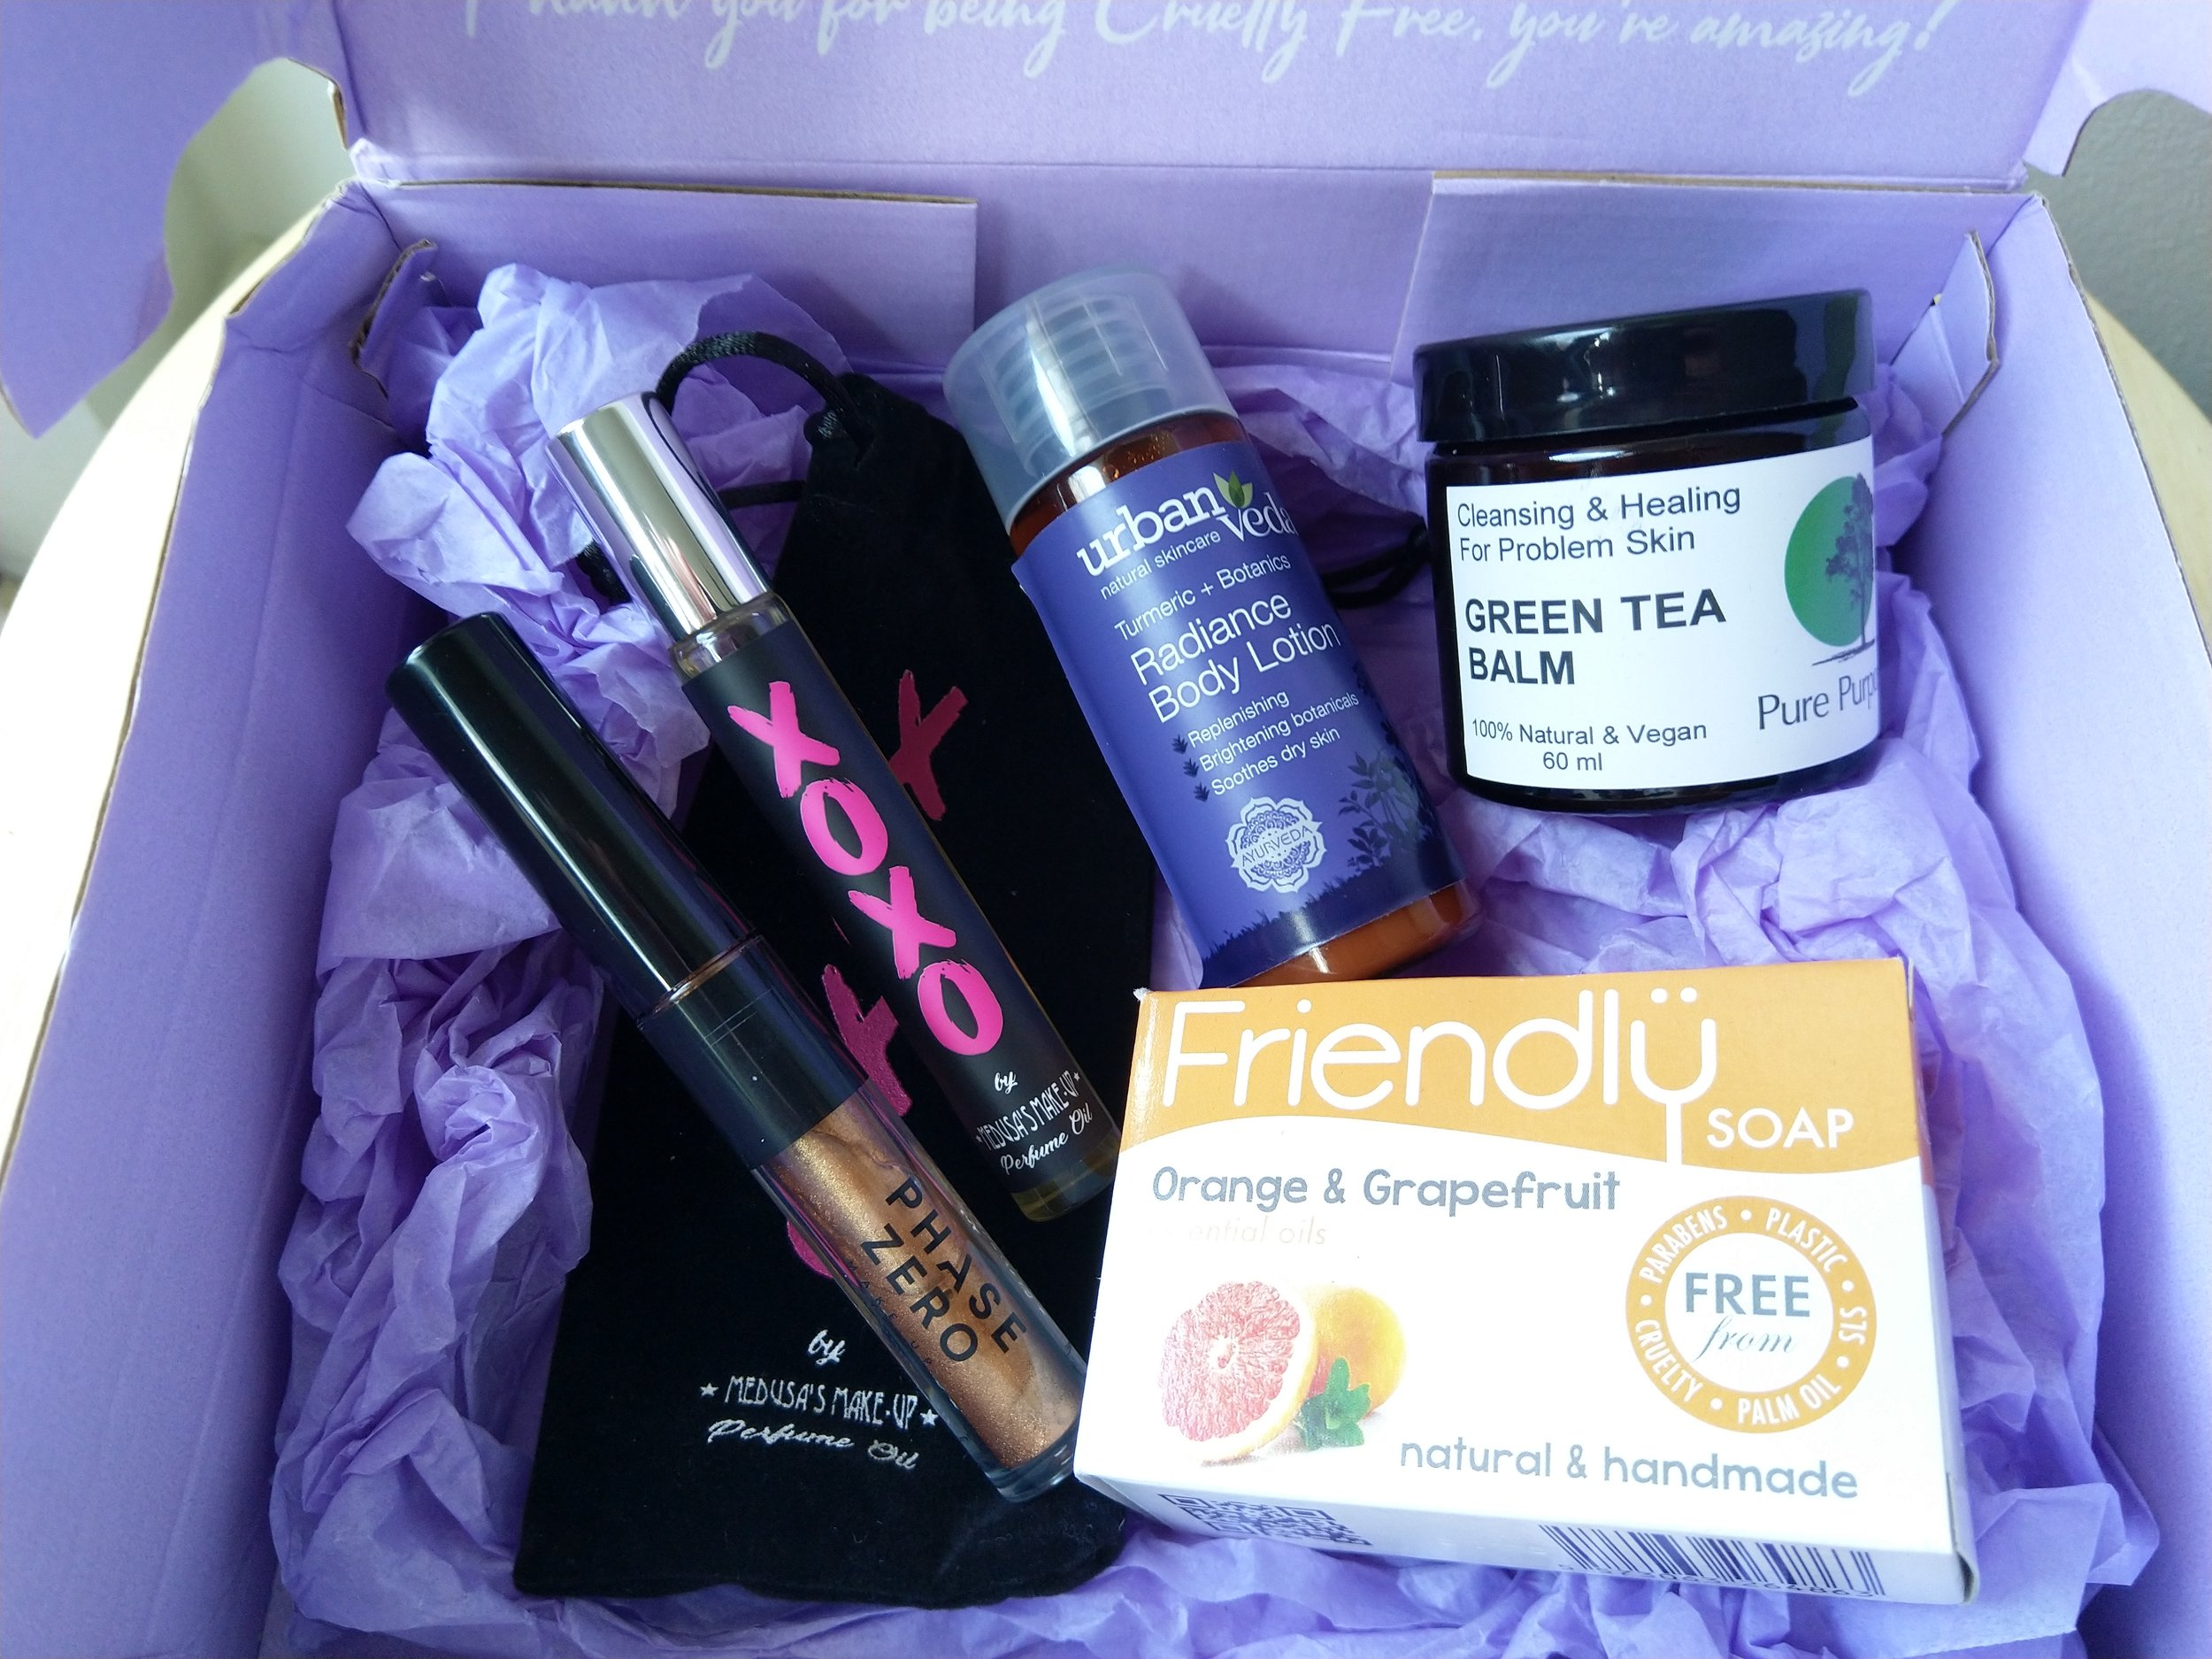 Image: The Cruelty Free Beauty Box / Author's own